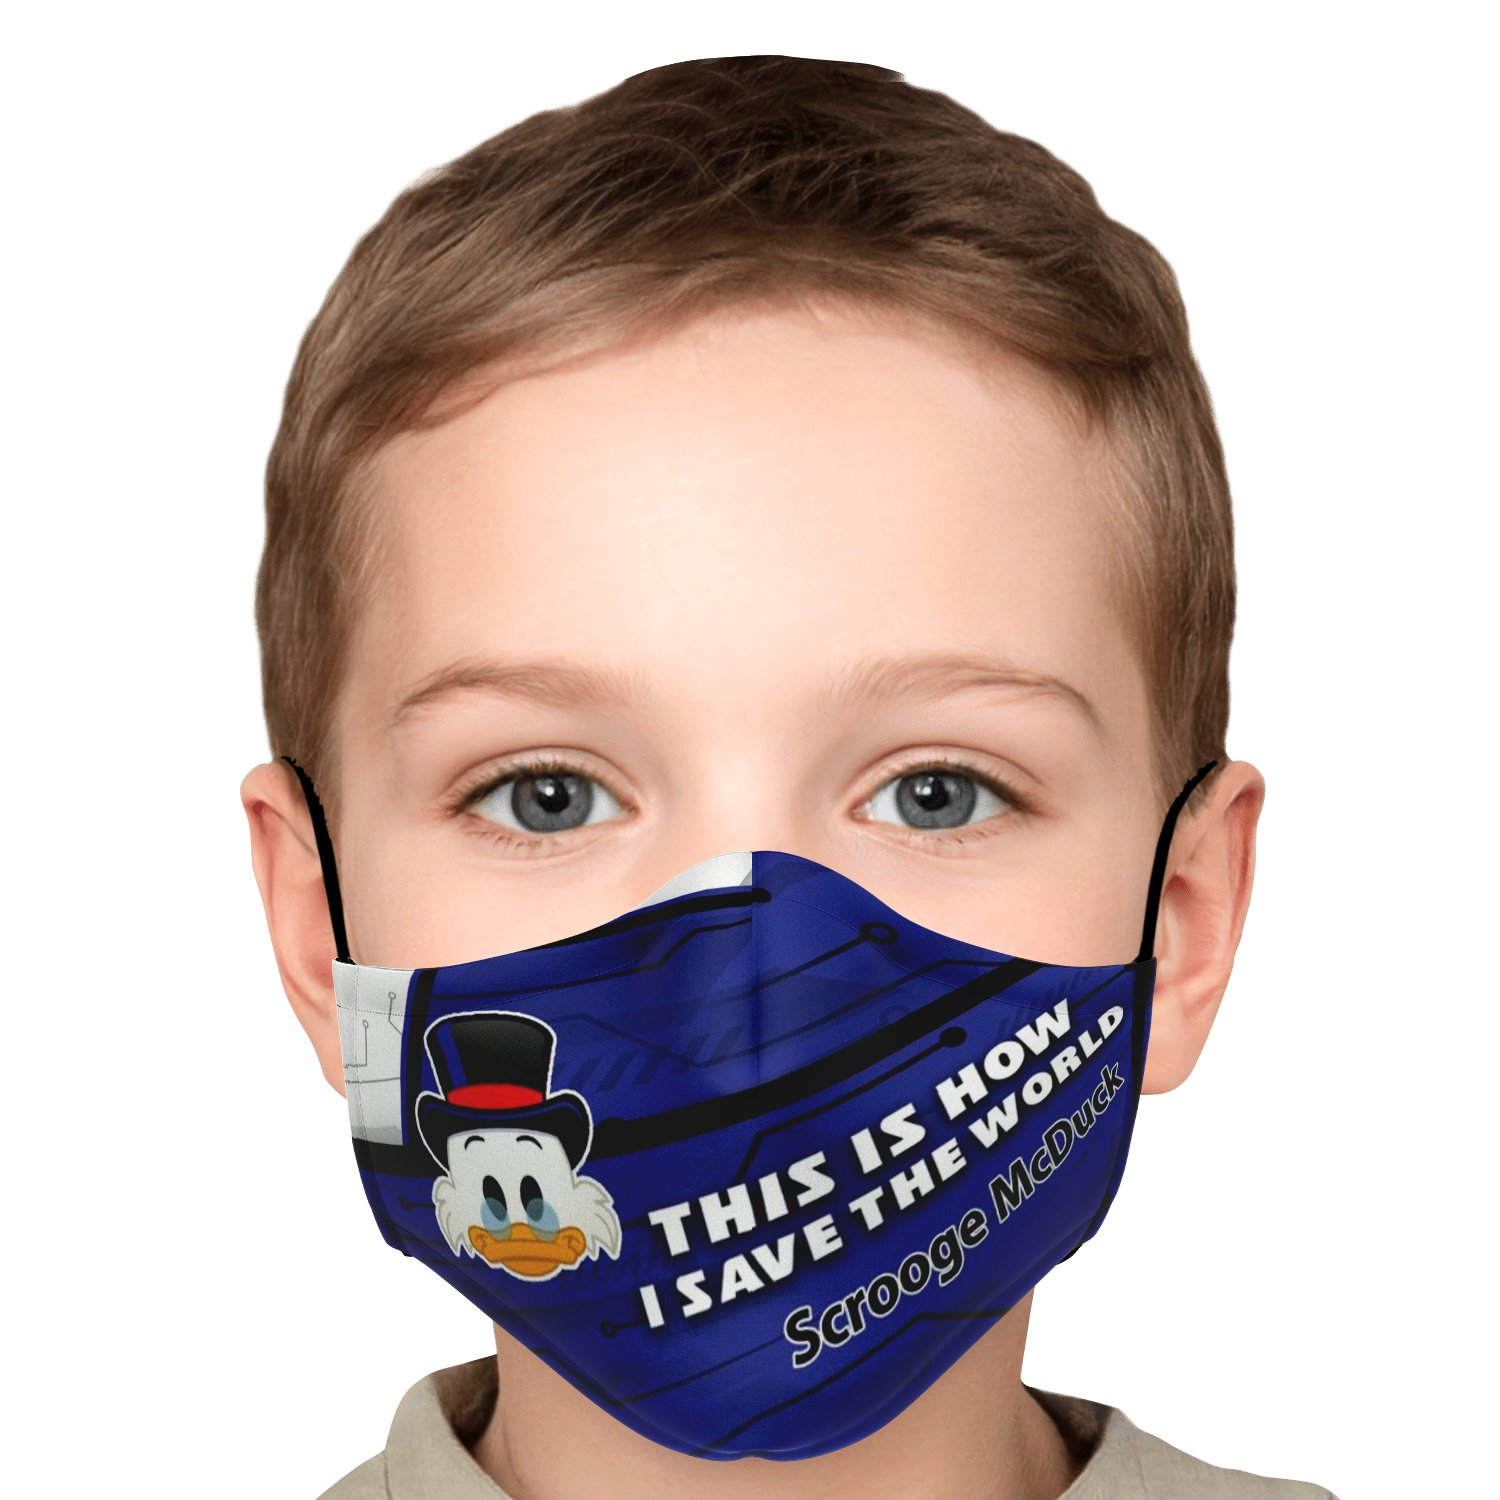 This Is How I Save The World Scrooge McDuck Disney Face Masks 5